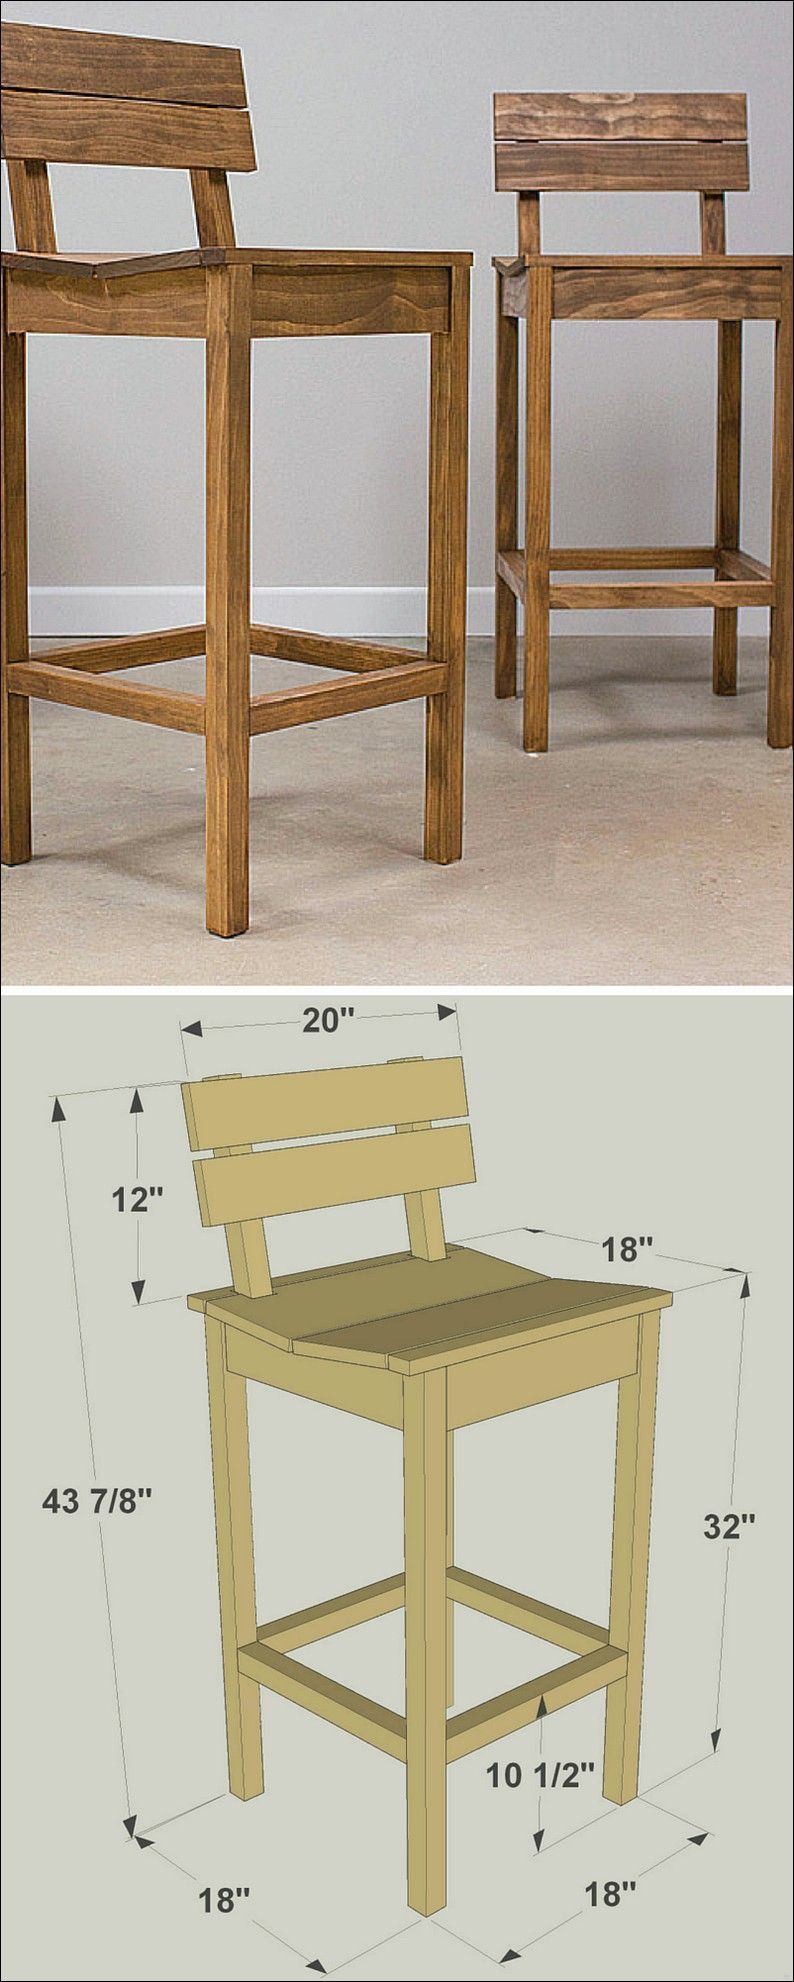 17 Awe Inspiring Wood Working Projects Logs Ideas Pub Chairs Furniture Furniture Plans